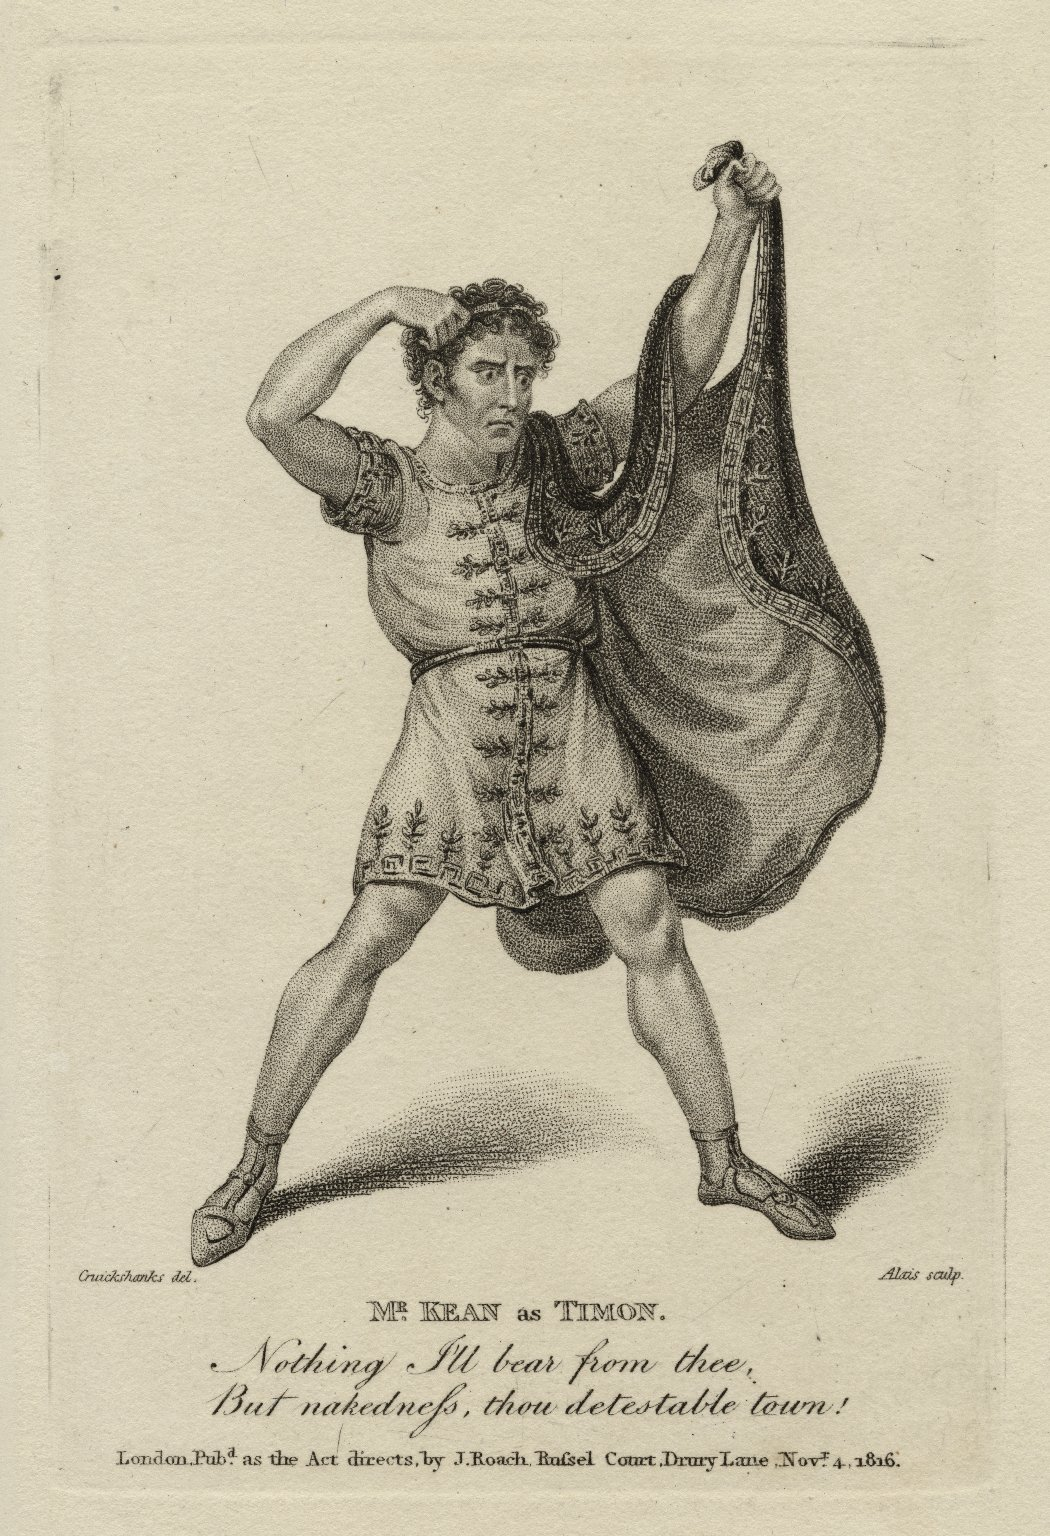 Mr. Kean as Timon [in Shakespeare's Timon of Athens] Nothing I'll bear from thee but nakedness, thou detestable town! [graphic] / Cruickshanks [sic], del. ; Alais, sculp.